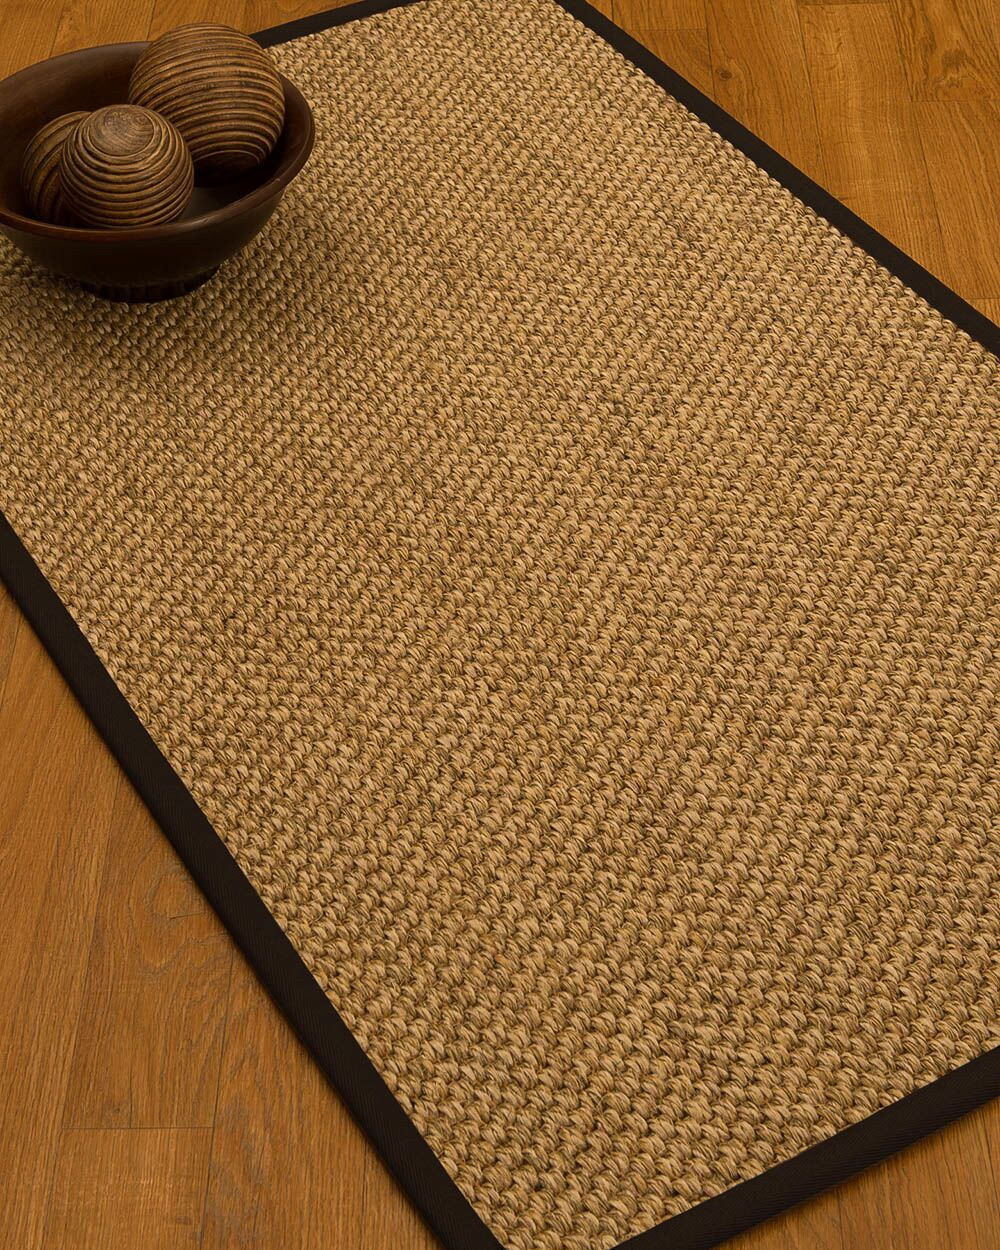 Heier Border Hand-Woven Brown/Fudge Area Rug Rug Size: Rectangle 6' x 9', Rug Pad Included: Yes